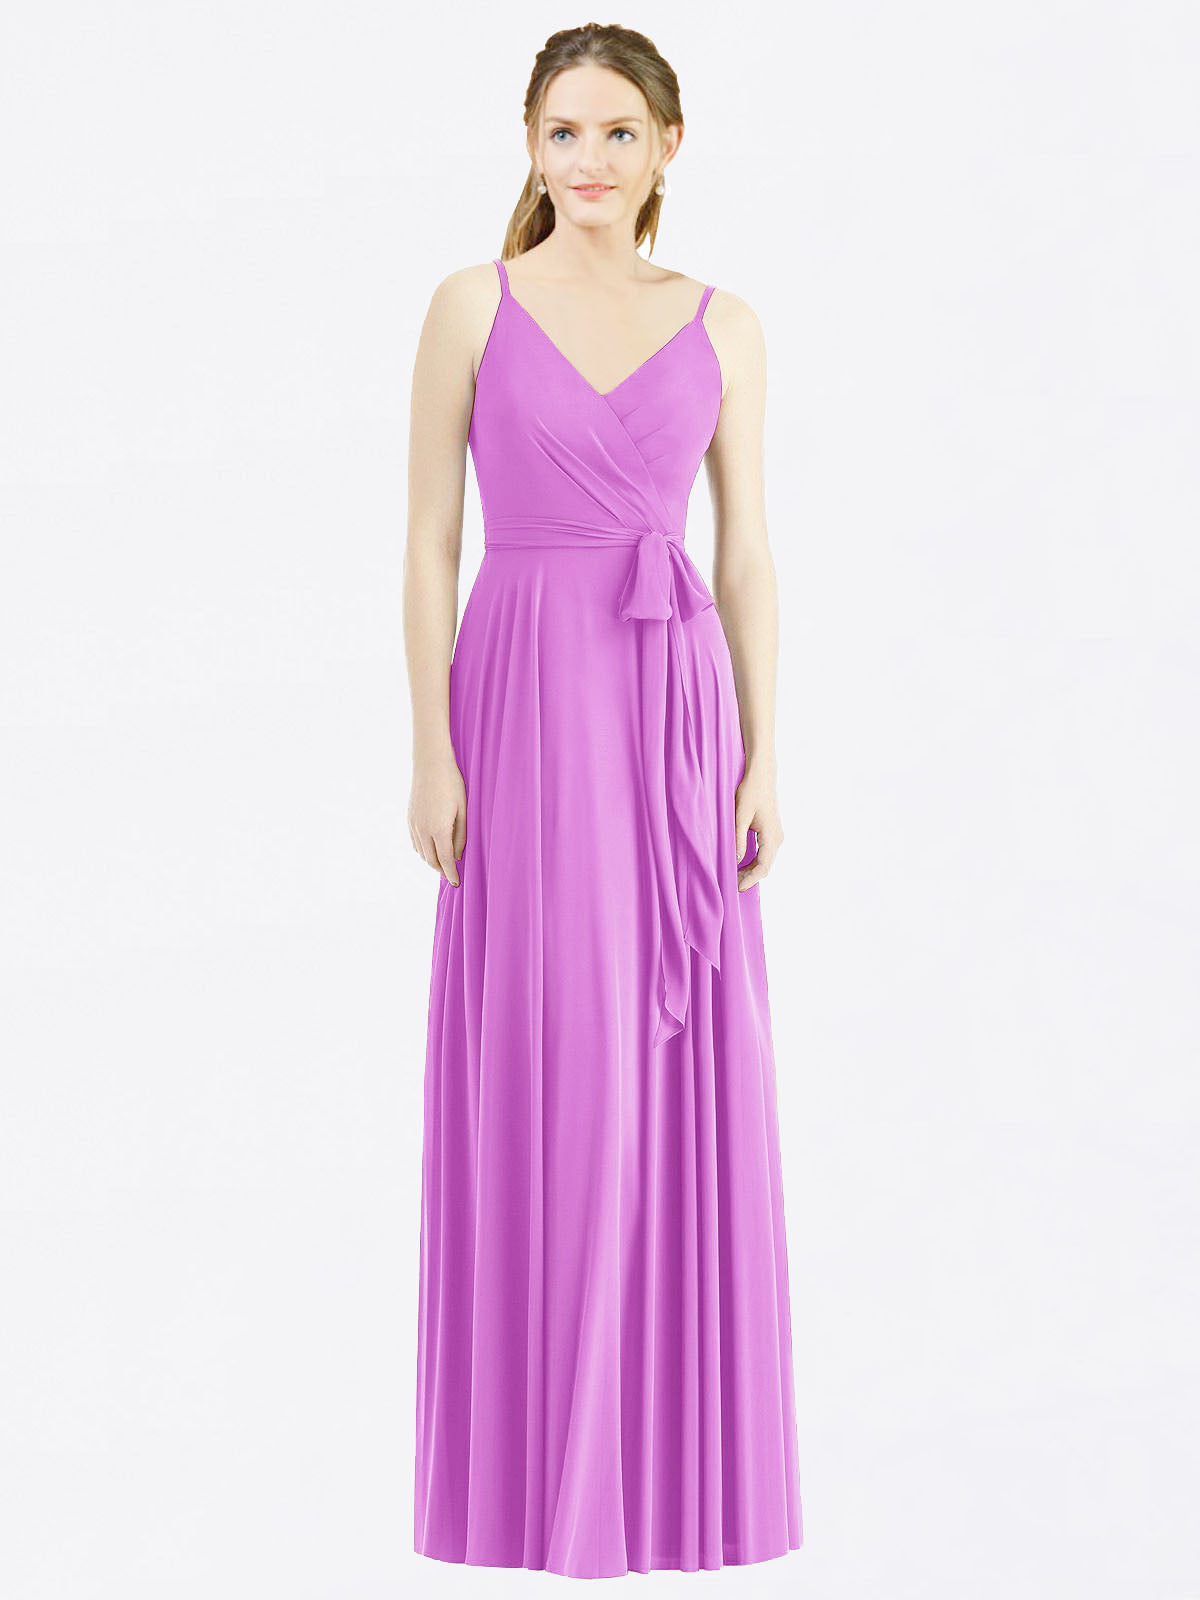 Long A-Line Spaghetti Straps, V-Neck Sleeveless Violet Chiffon Bridesmaid Dress Madilyn